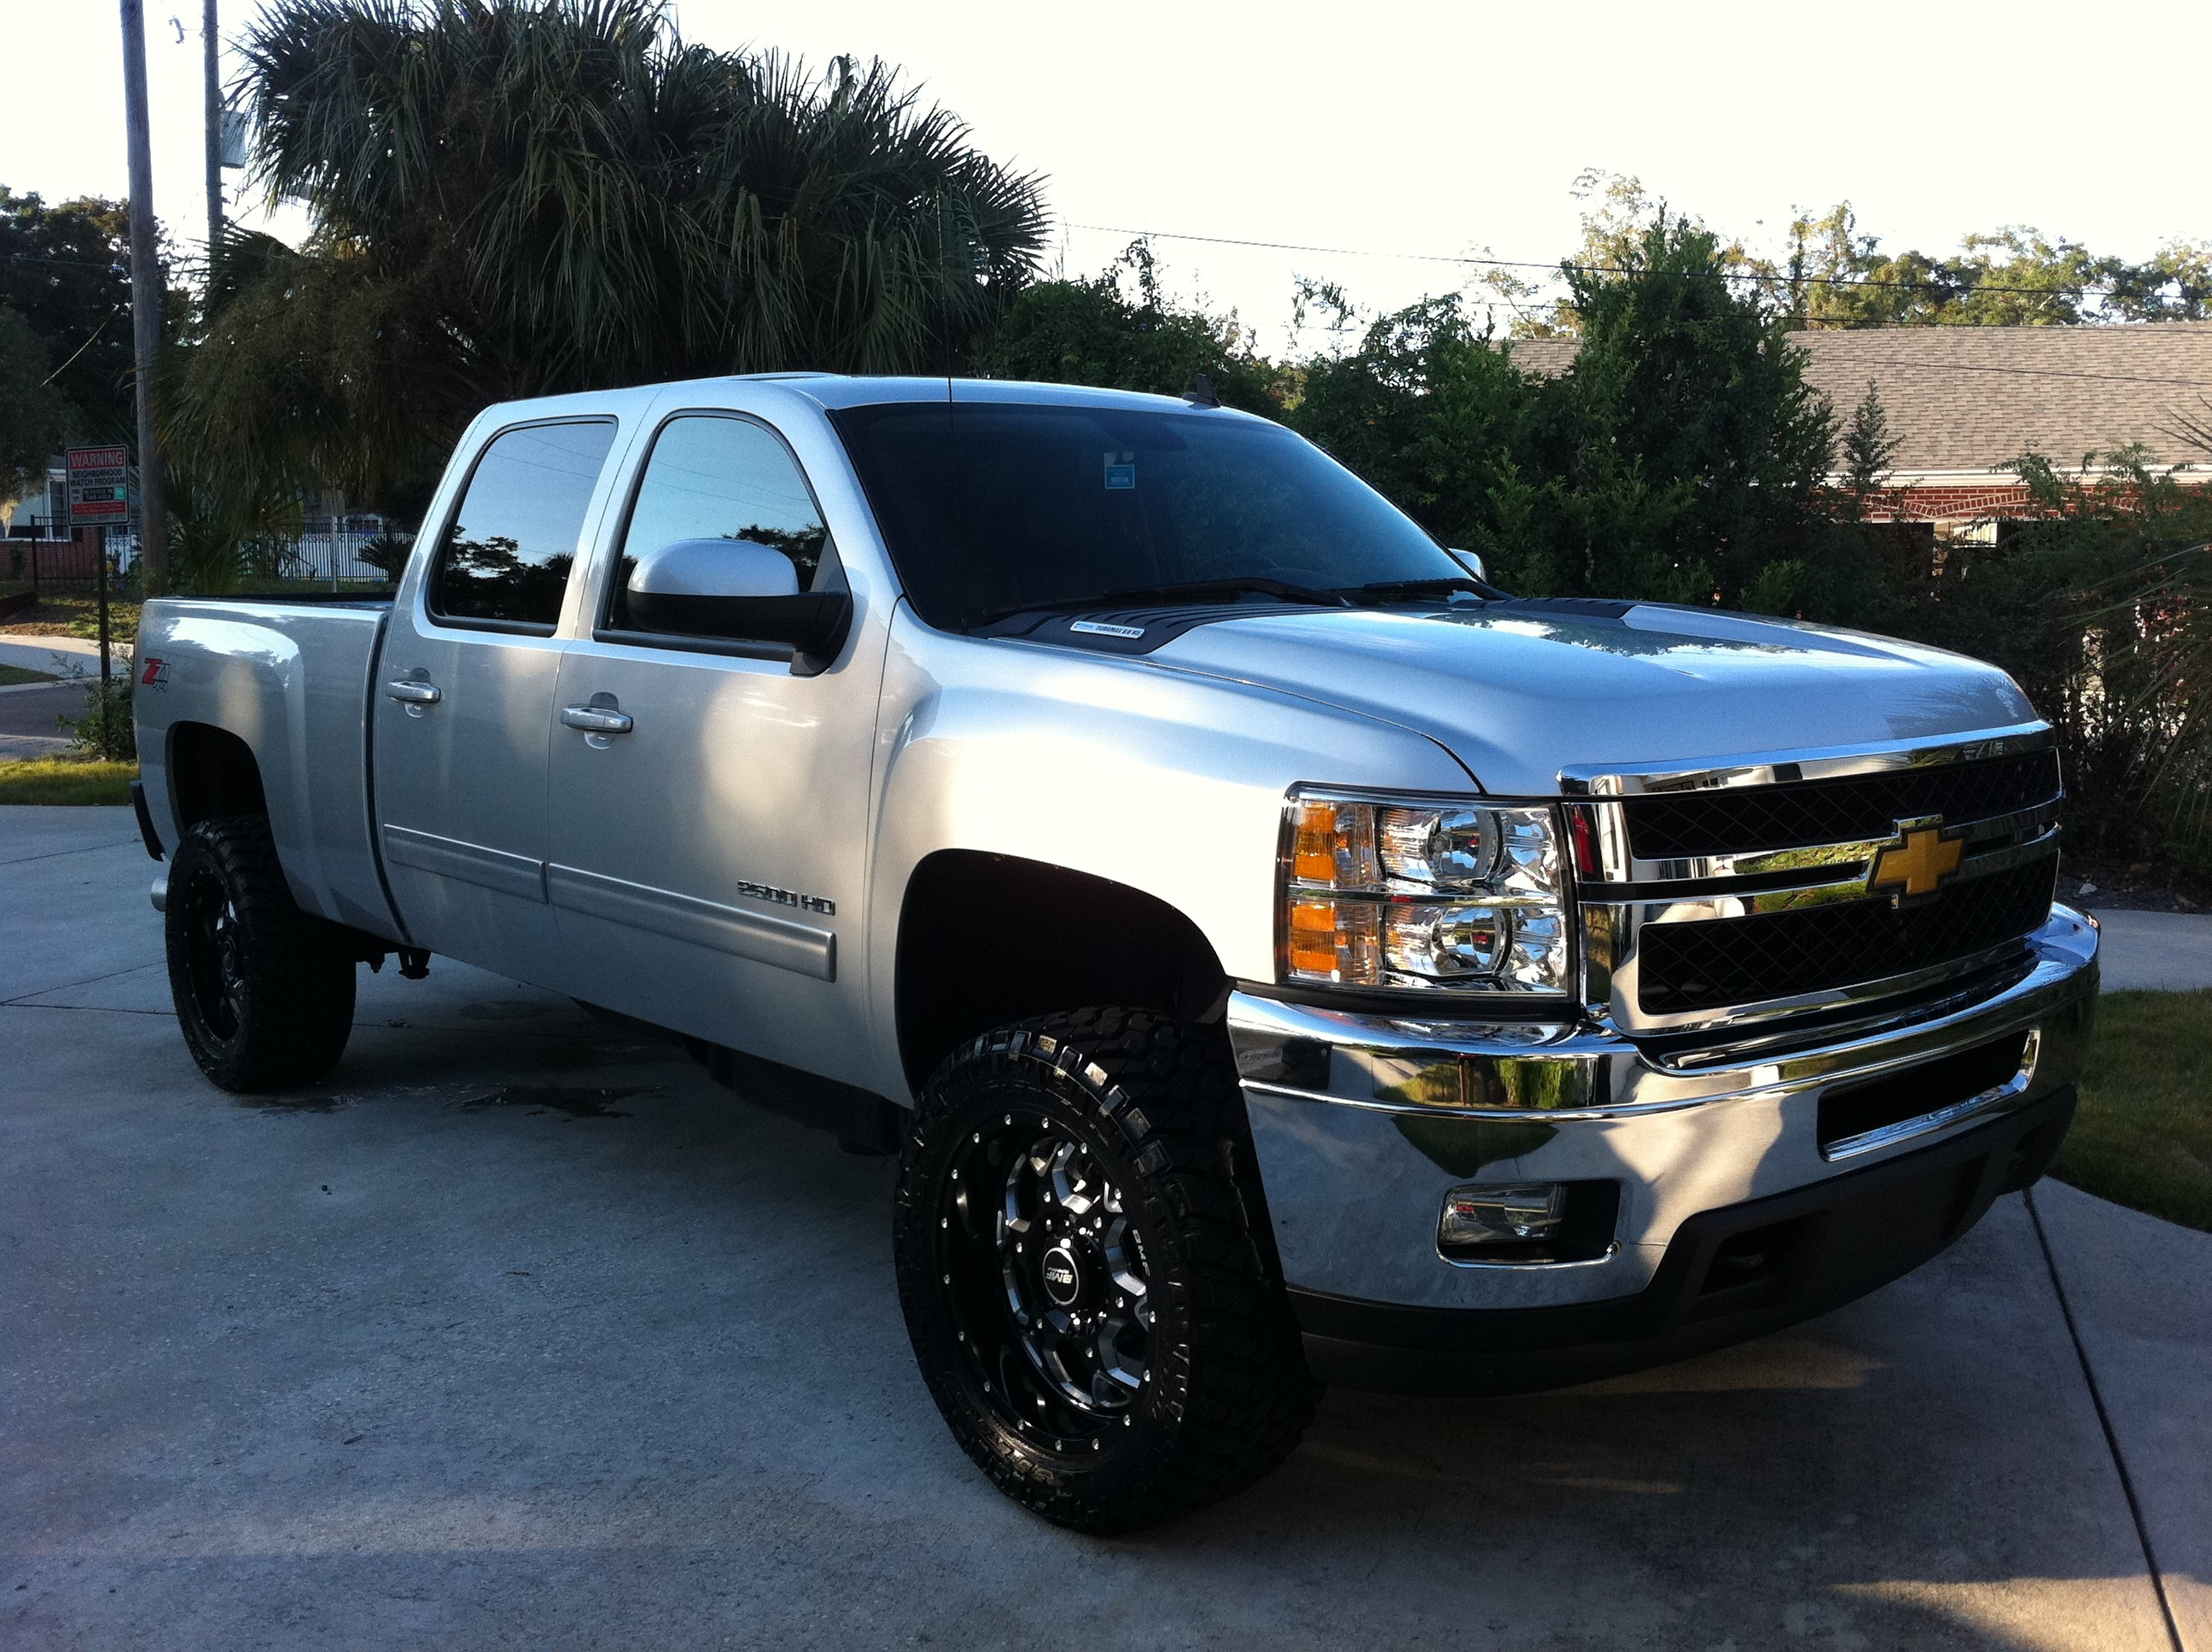 2592x1936 New Rims & Tires For The New Duramax - The Hull Truth - Boating and Fishing  Forum